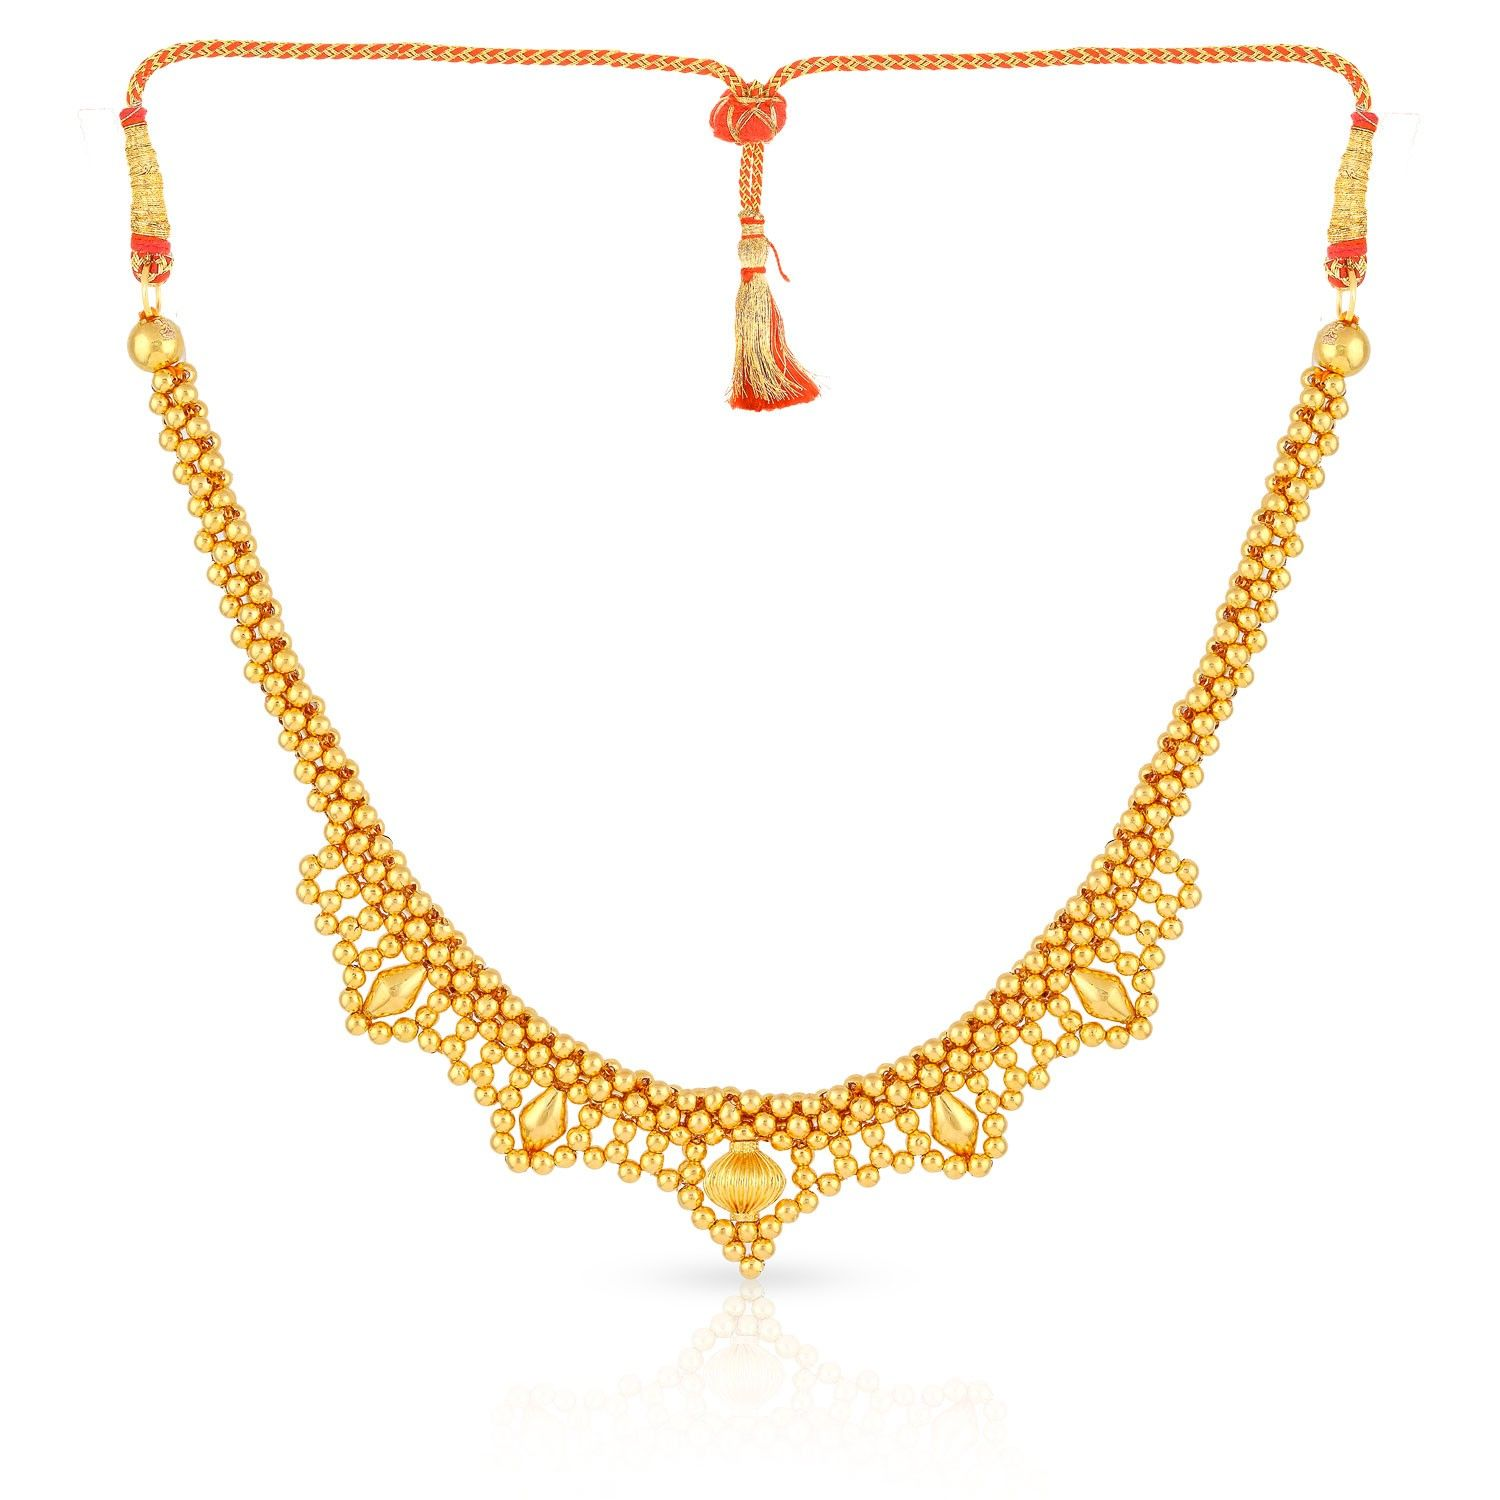 Malabar Gold Necklace MHAAAAAABUSX | Blings & Baubles | Pinterest ...